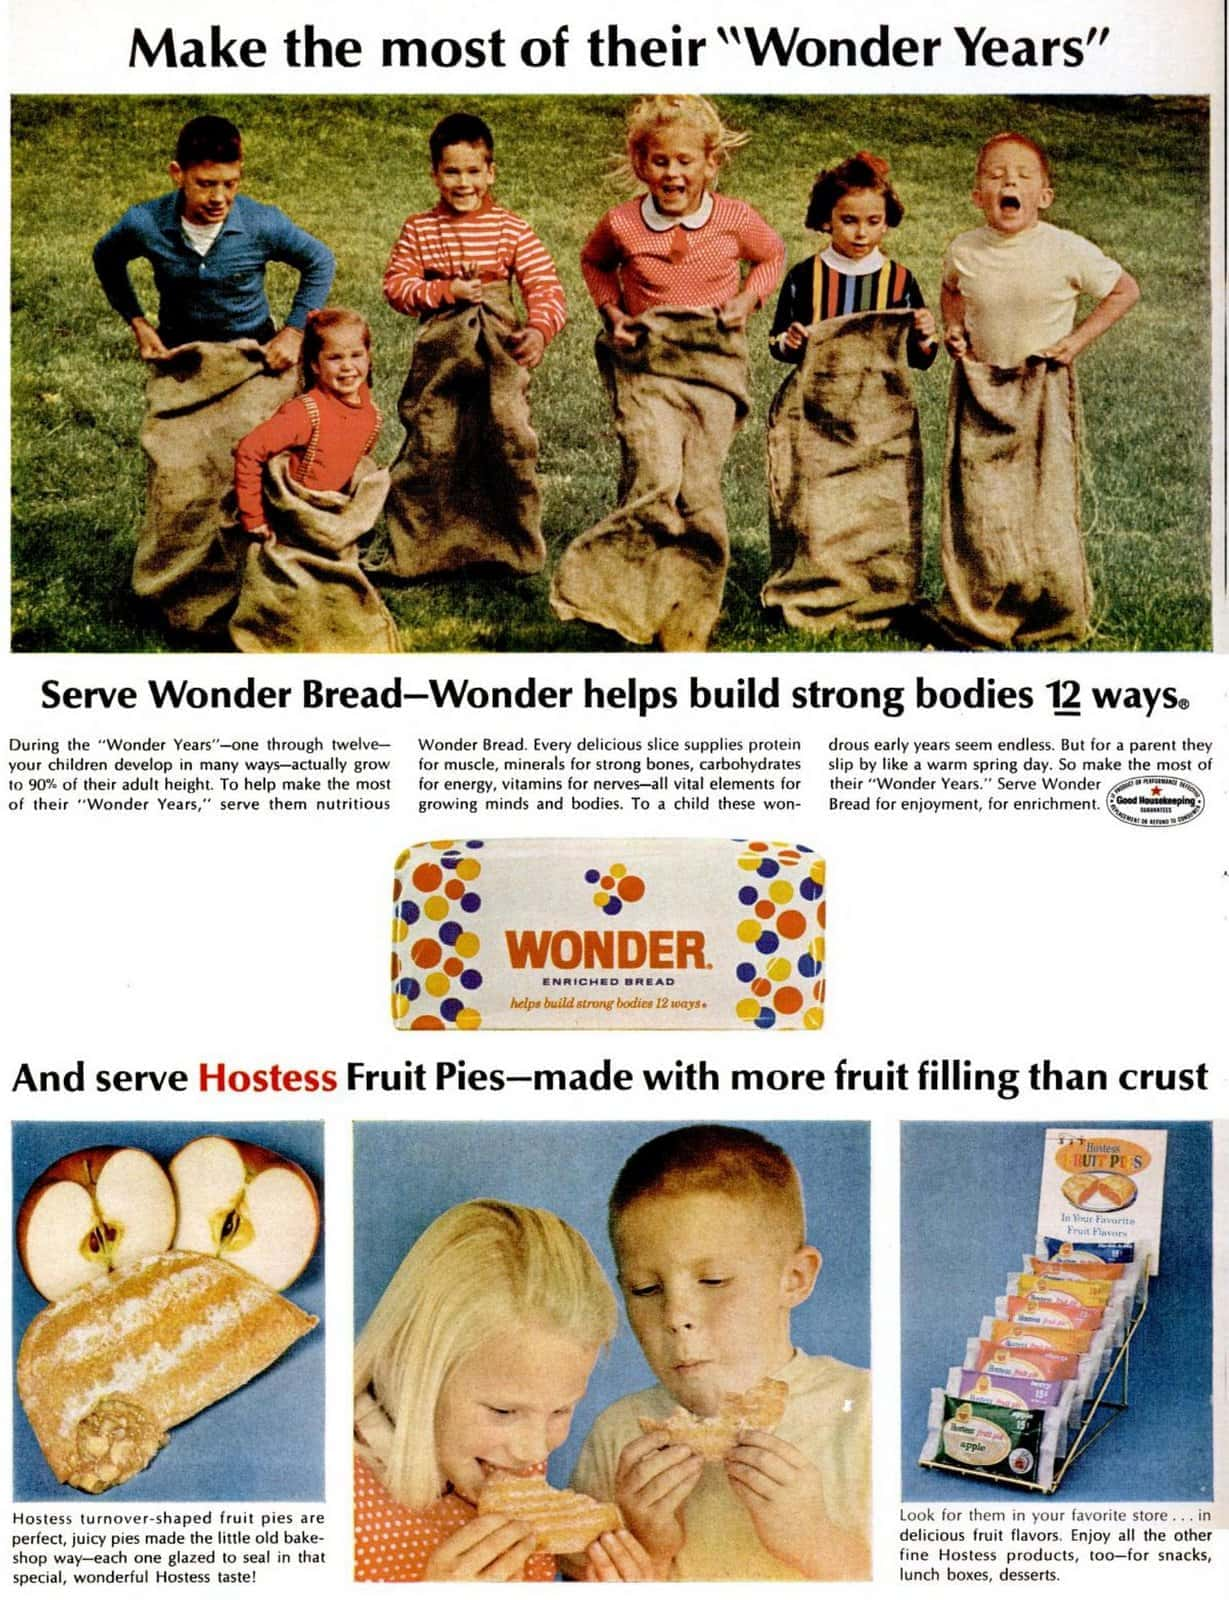 Wonder Bread and Hostess Fruit Pies (1966)